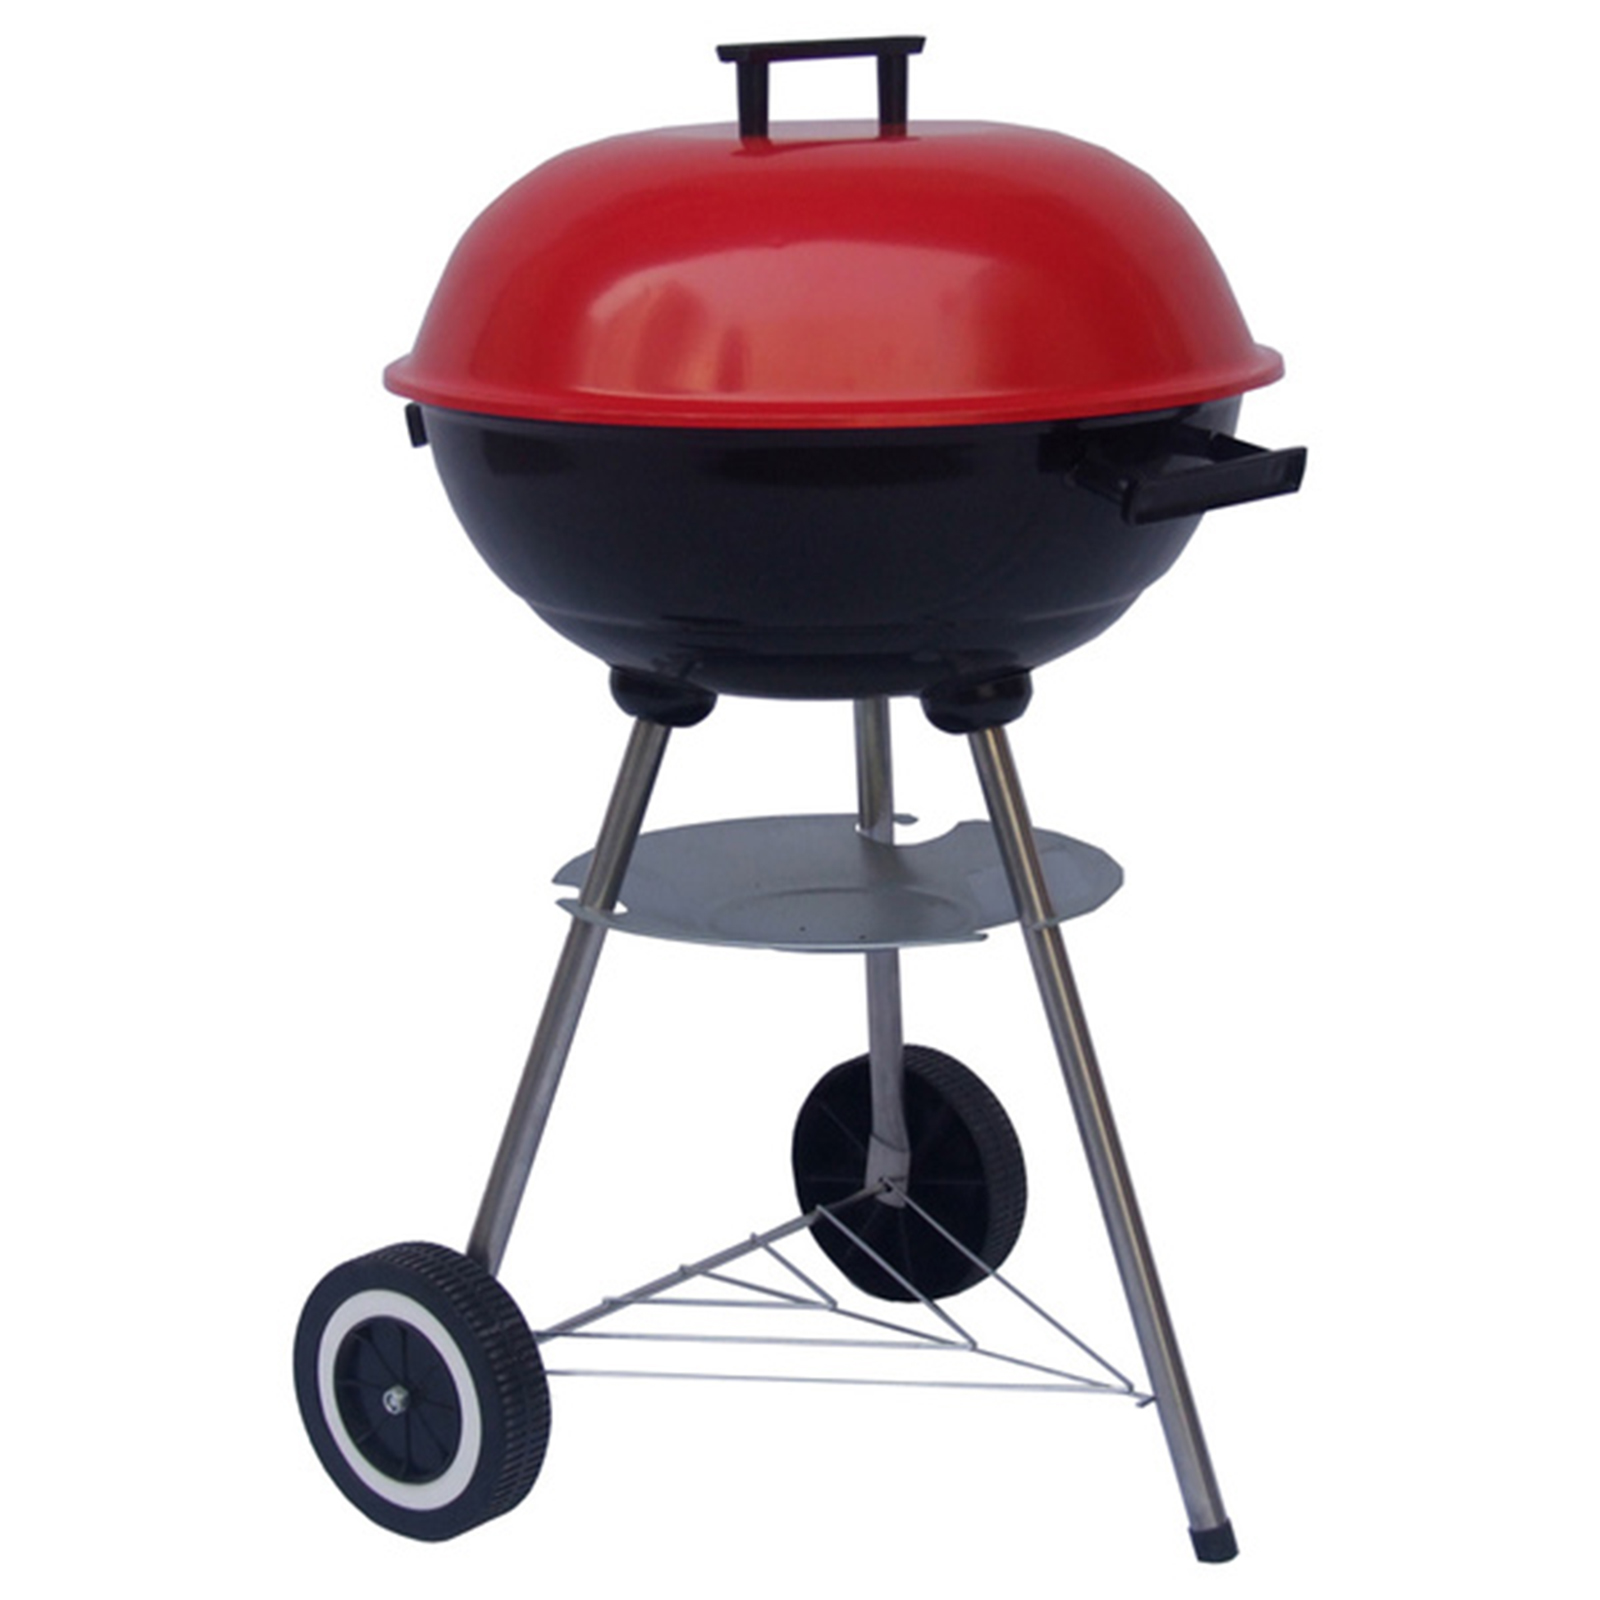 "Brentwood 17"" Barbeque Grill"